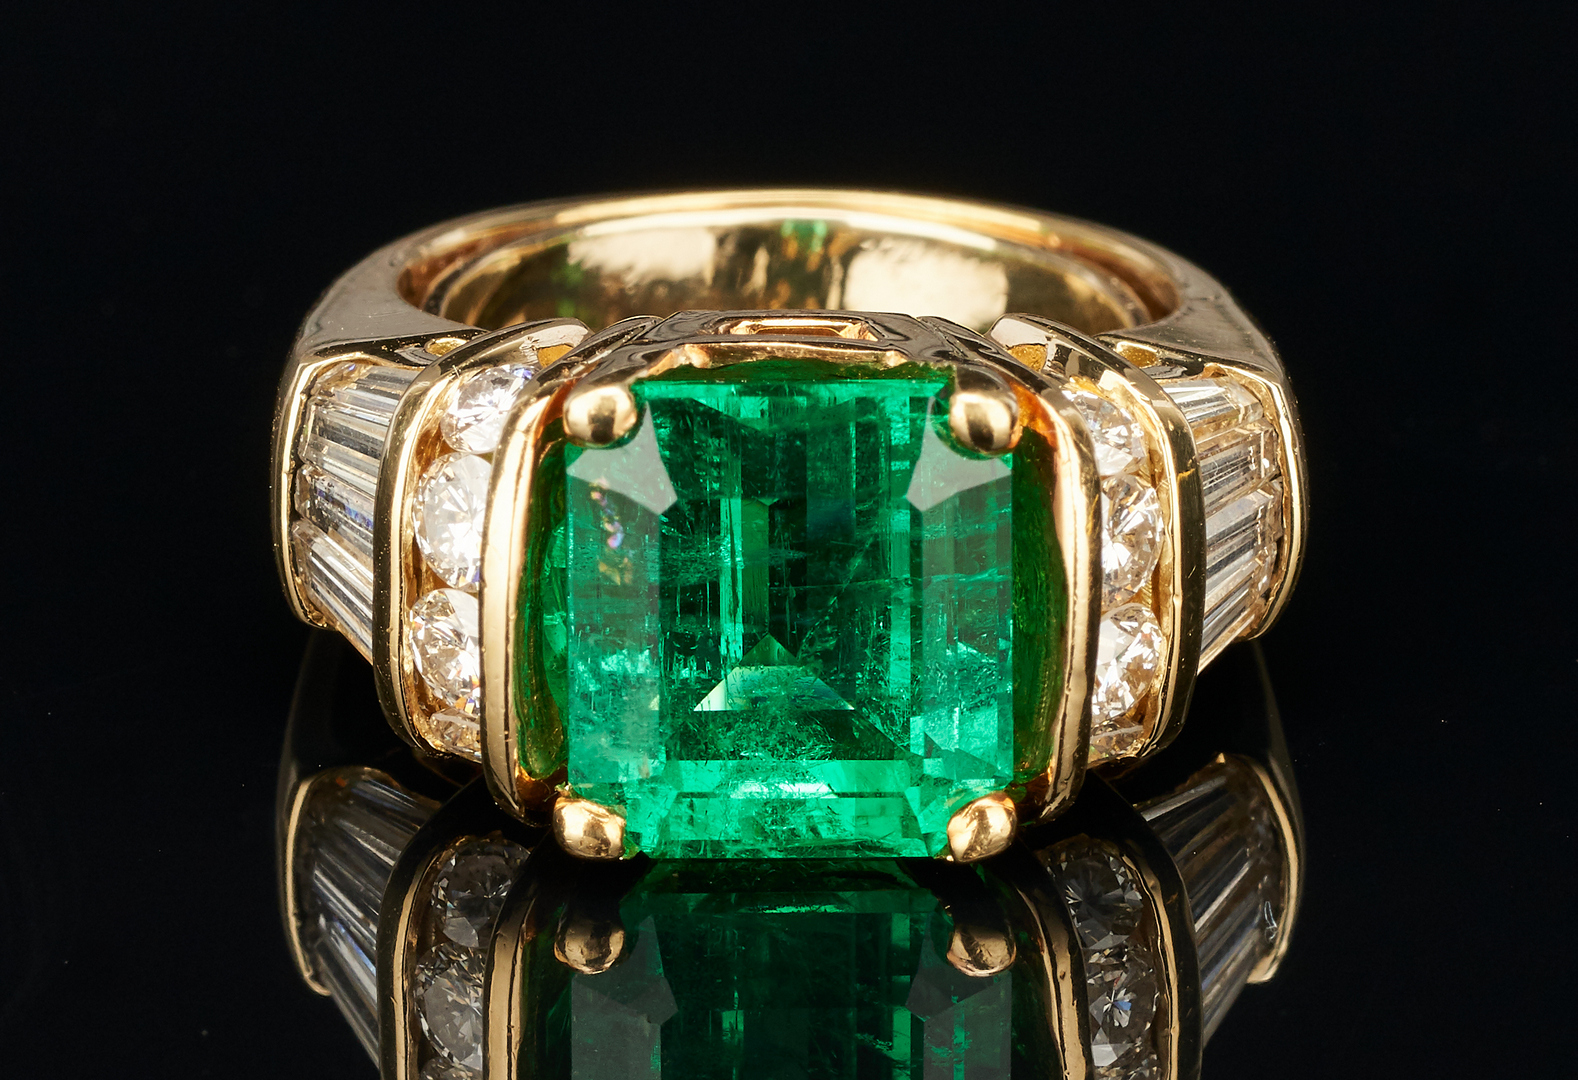 Lot 31: Ladies 18K Emerald & Diamond Ring, 5 Carats